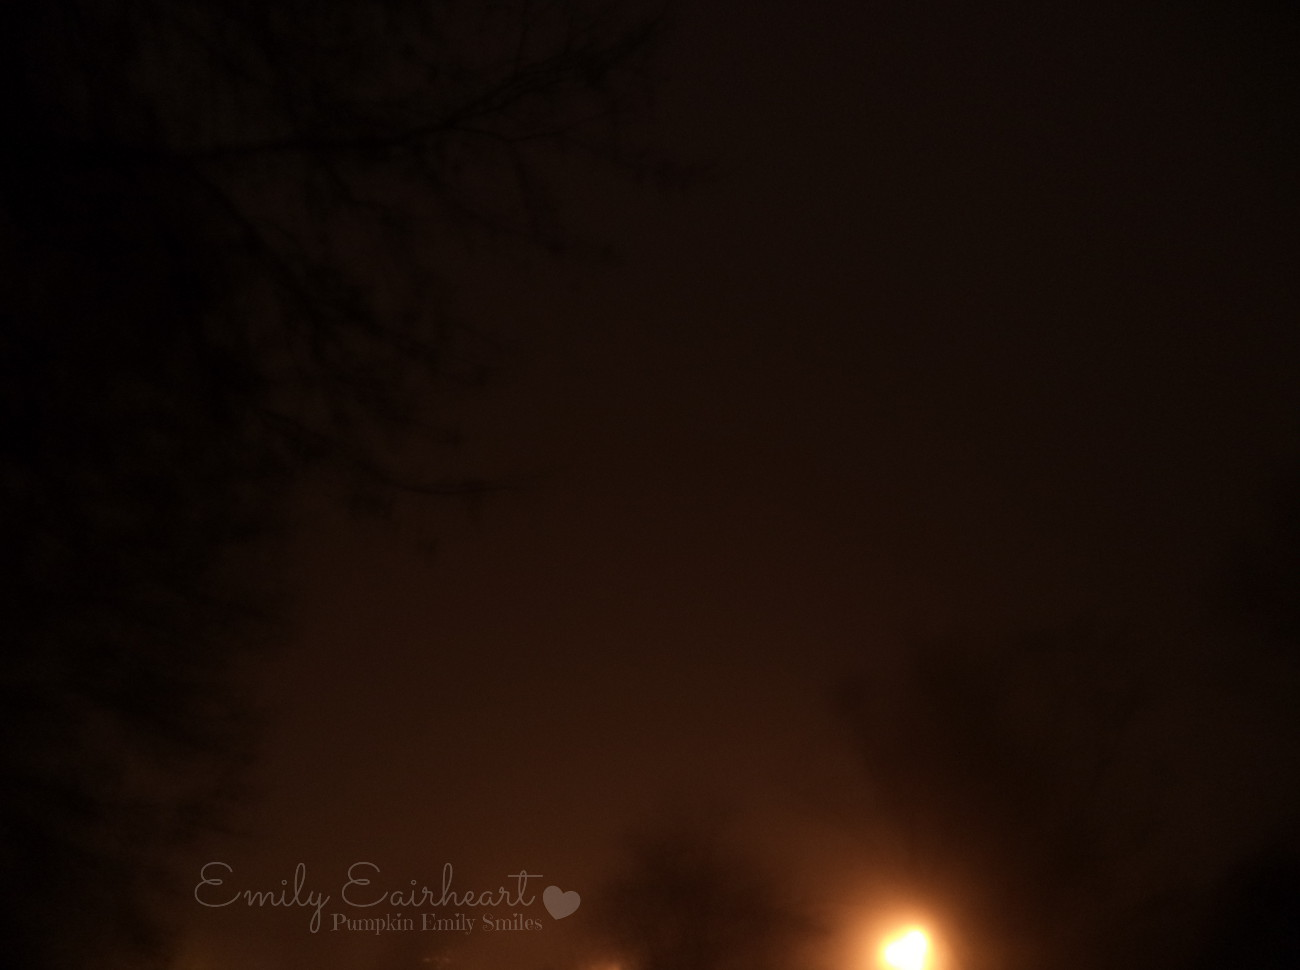 Lights and sky surrounded by fog at night.